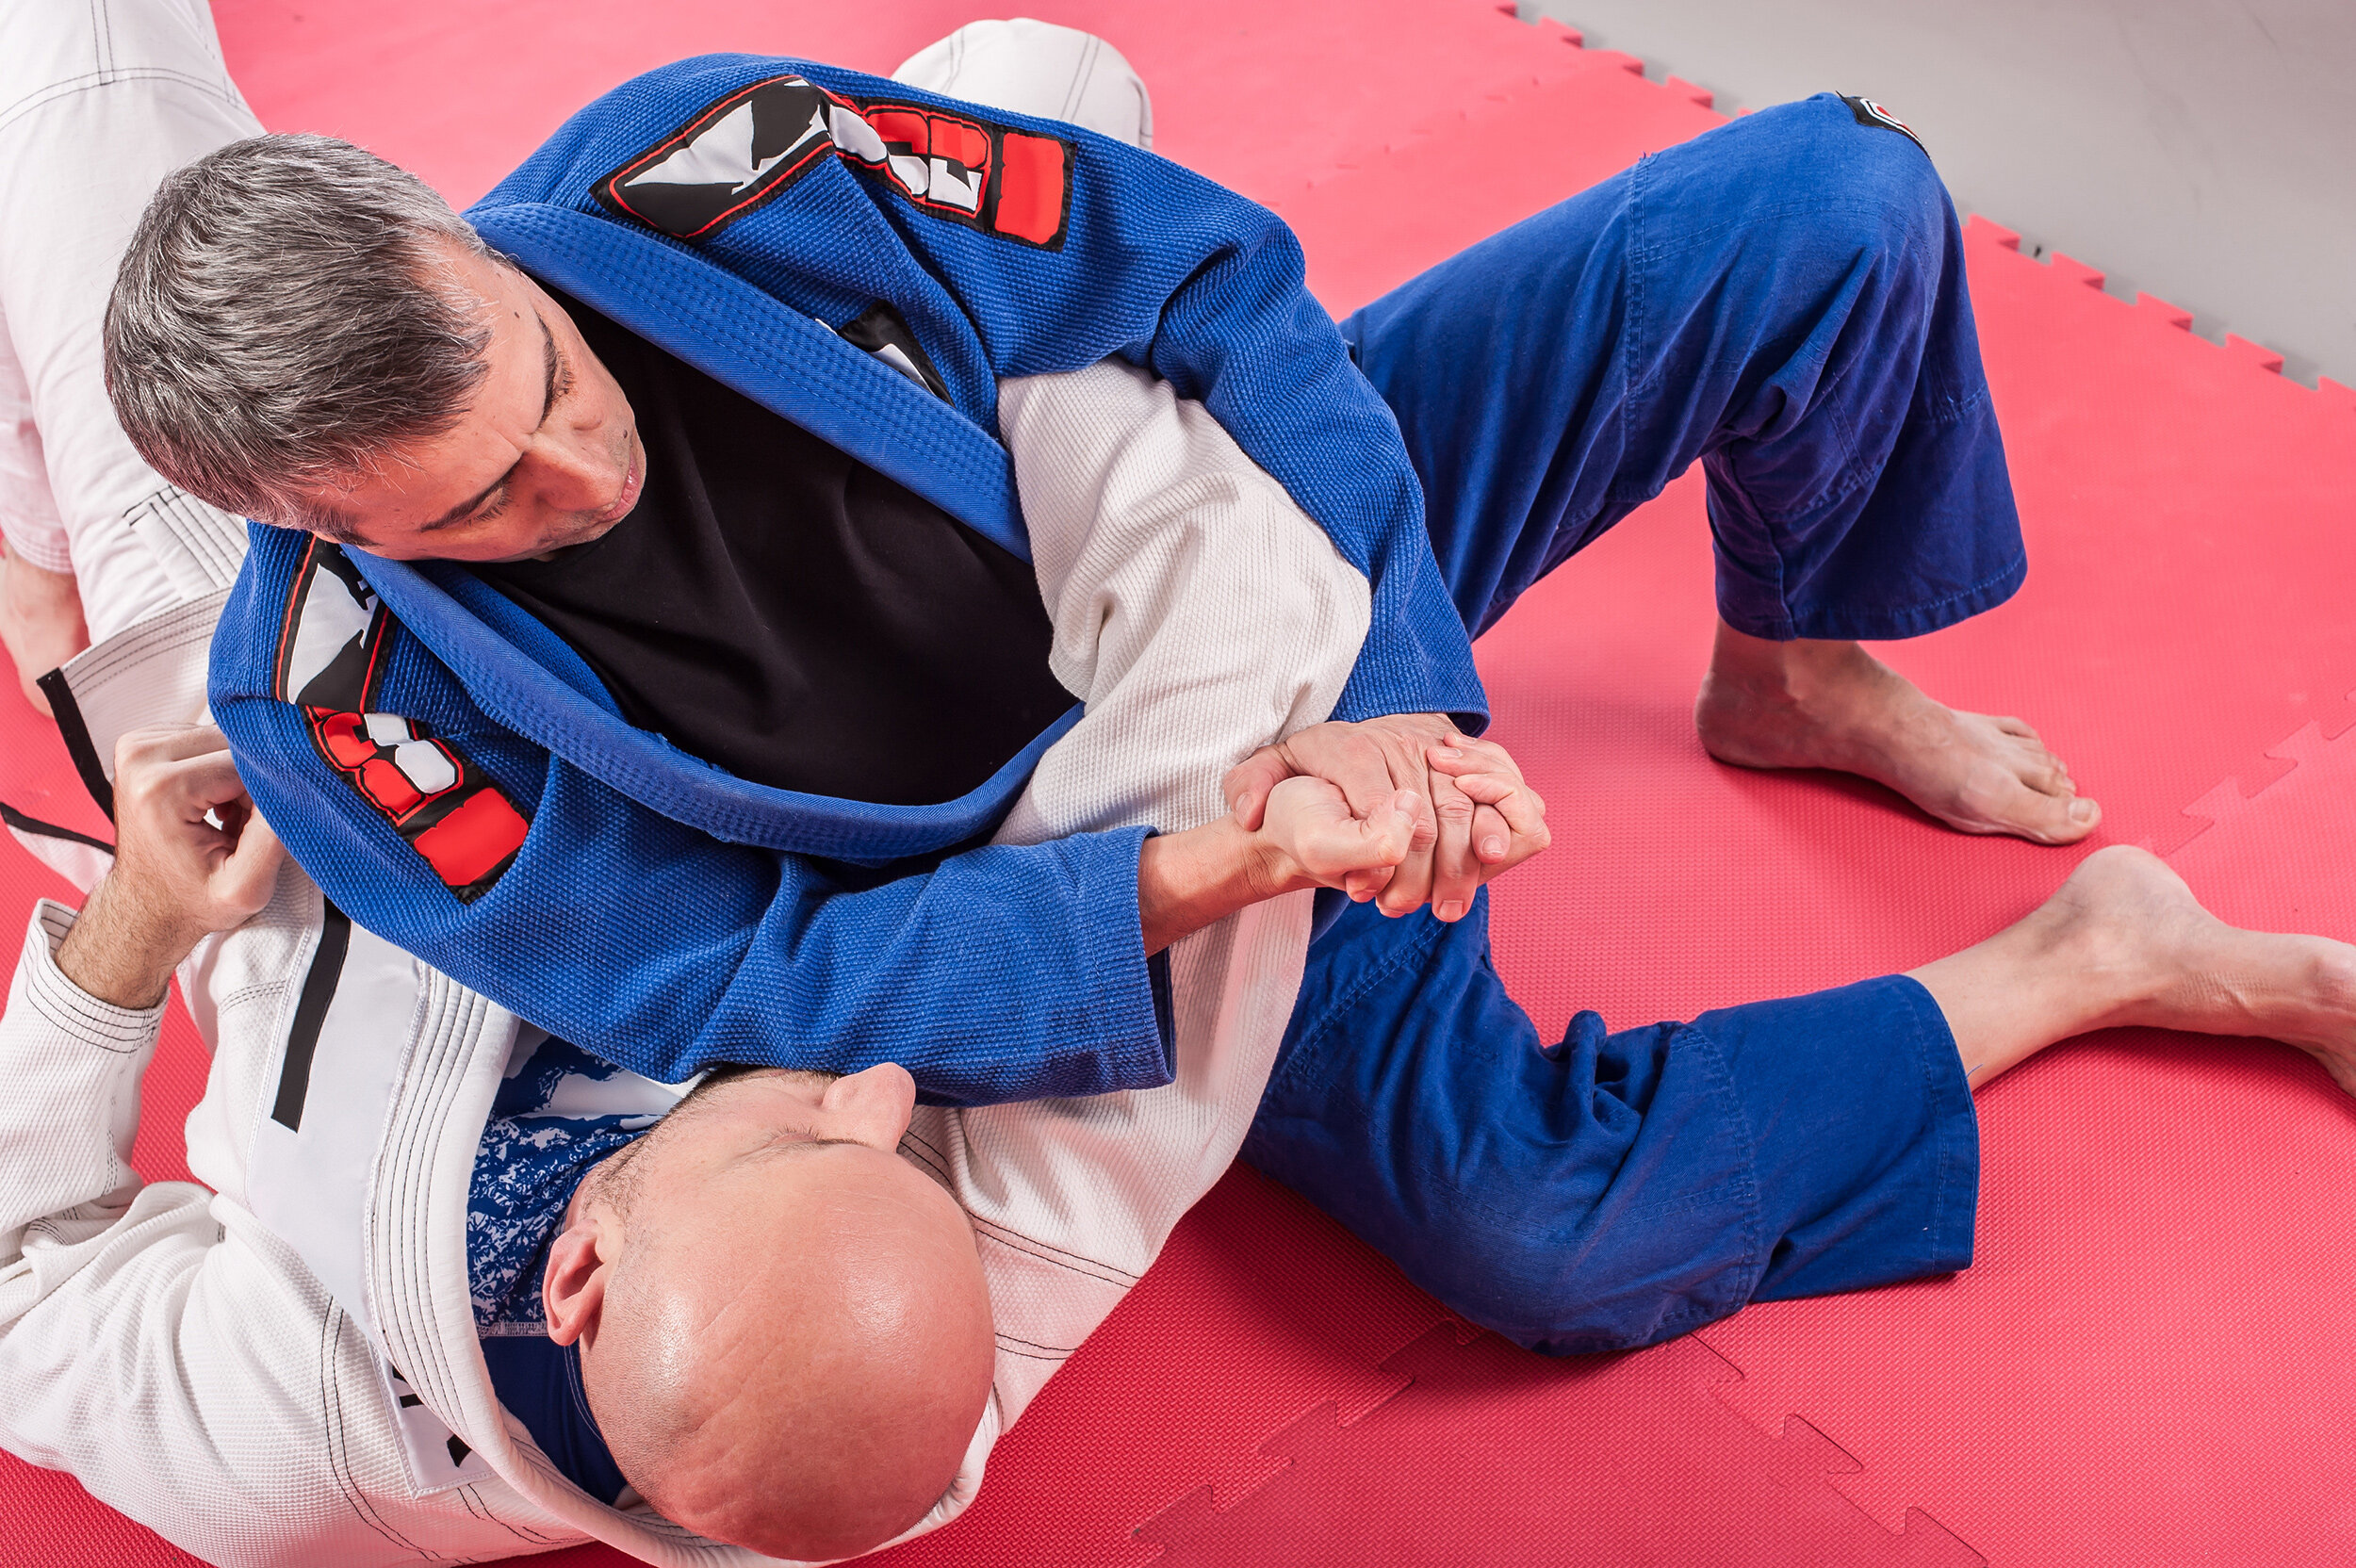 Professor and competitor of Brasilian Jiu-Jitsu - With pain in the wrist